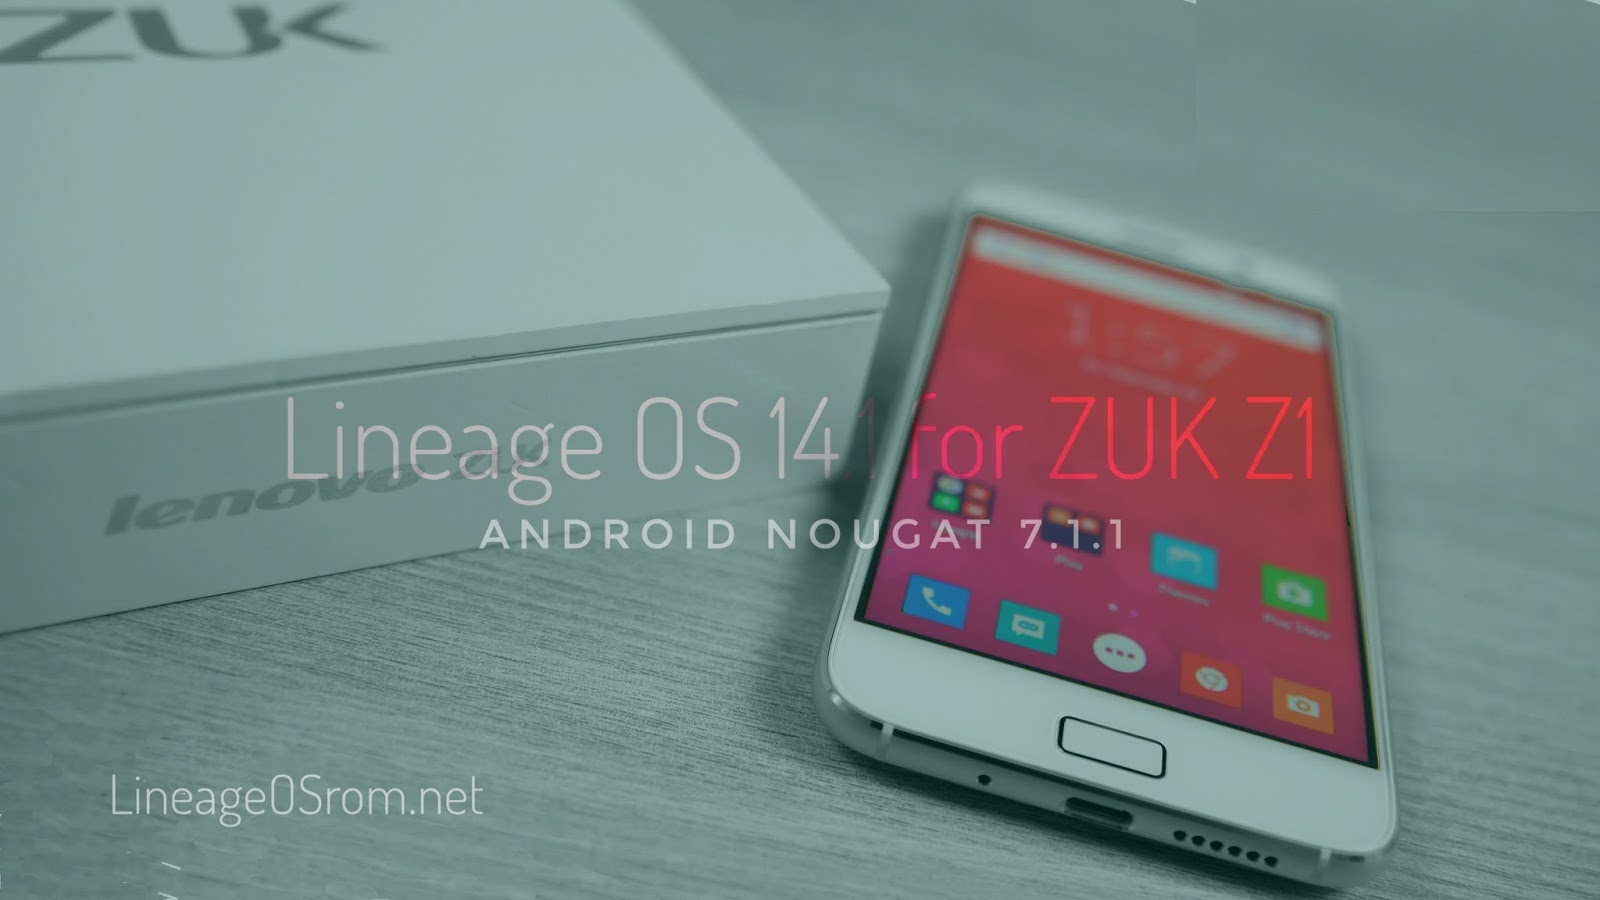 Lineage OS ROM for ZUK Z1